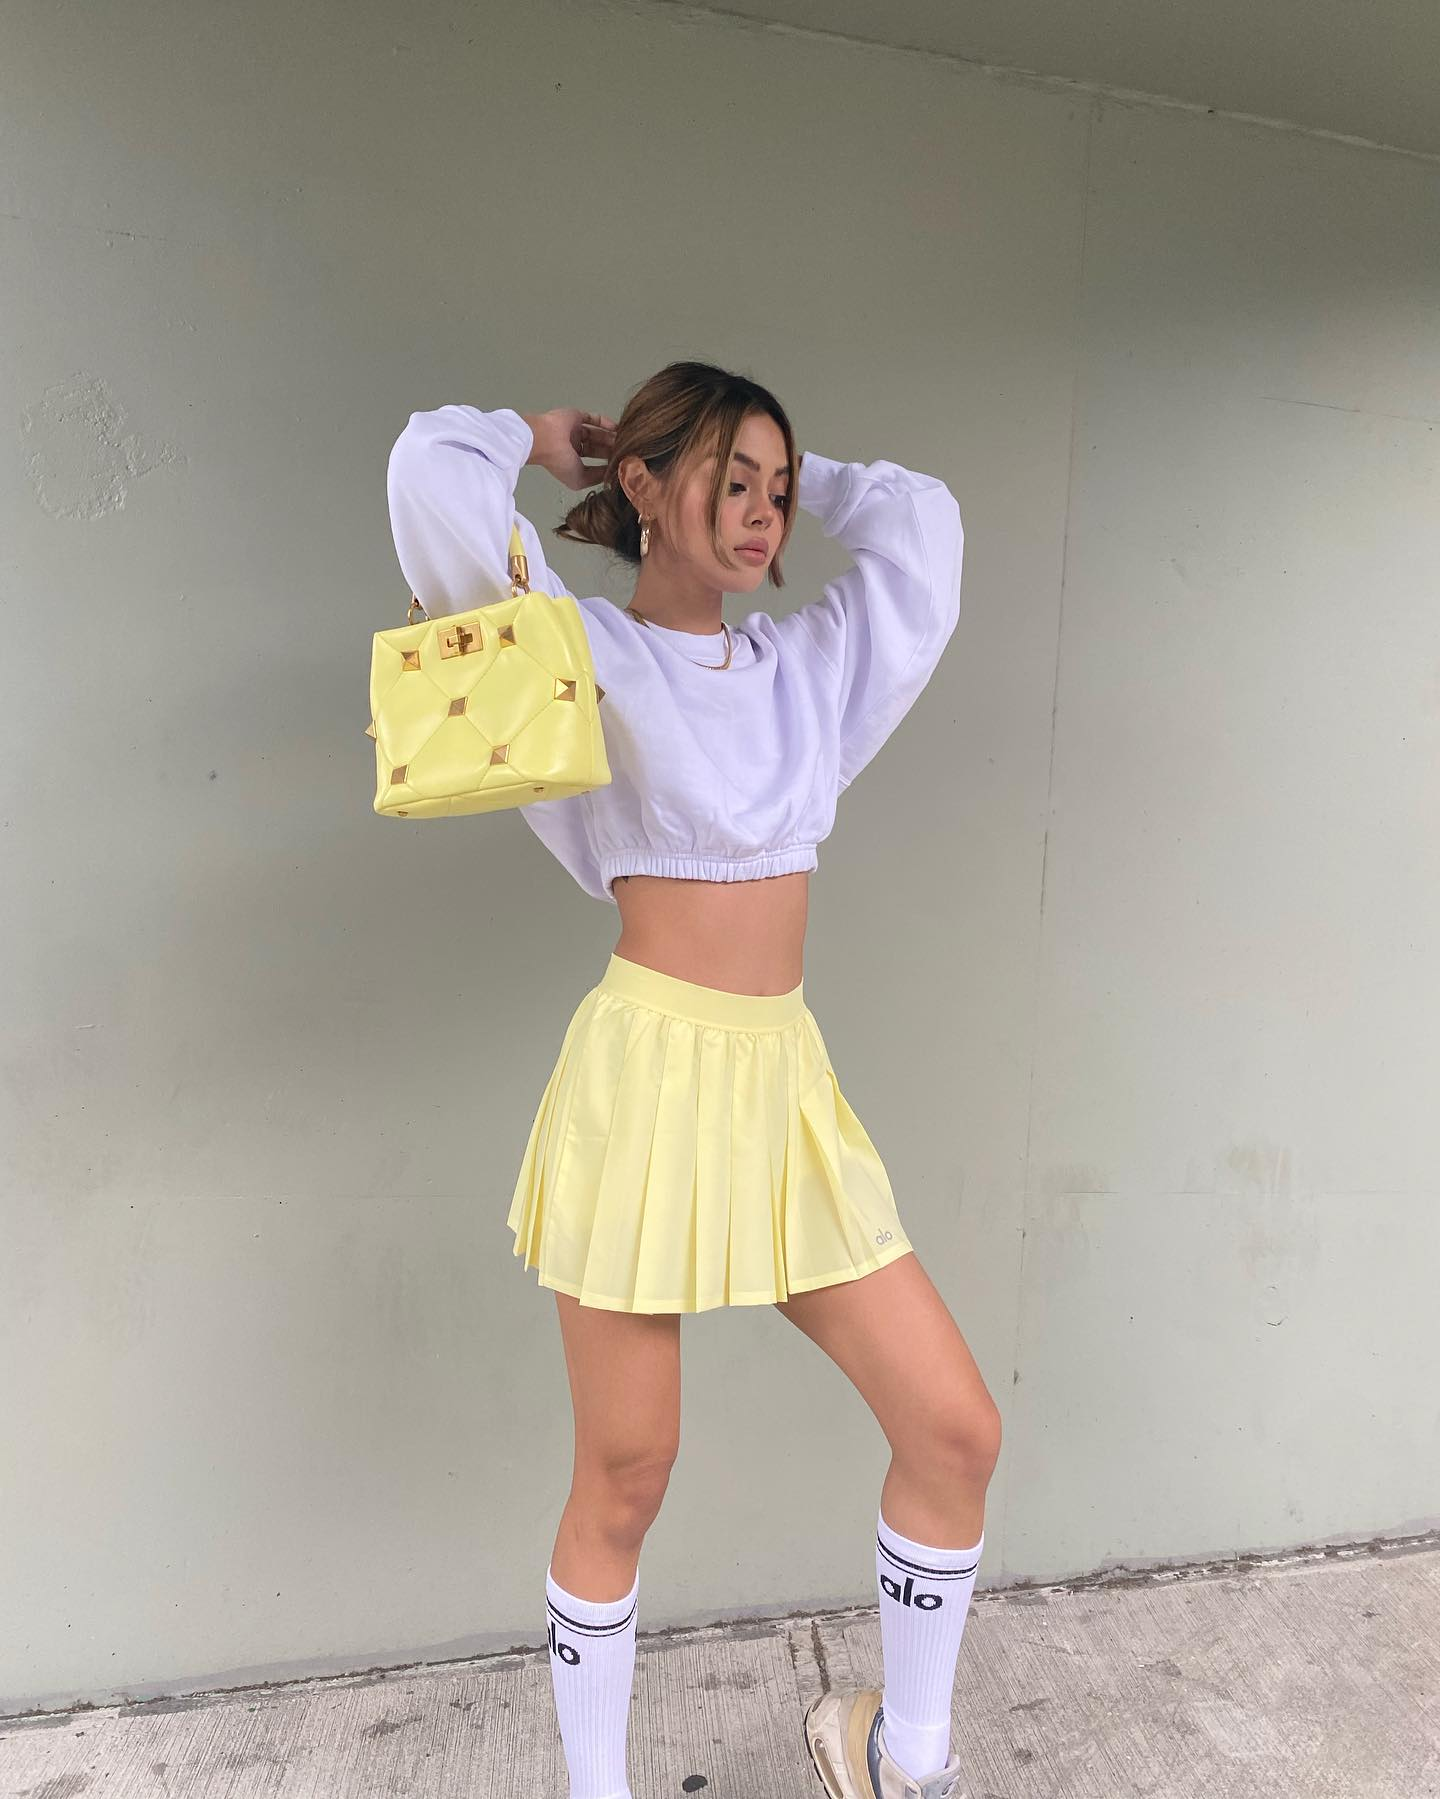 @lilymaymac wearing the Devotion Crew Neck Pullover with the Varsity Tennis Skirt in Buttercup paired with a yellow handbag for an autumn morning walk to breakfast.